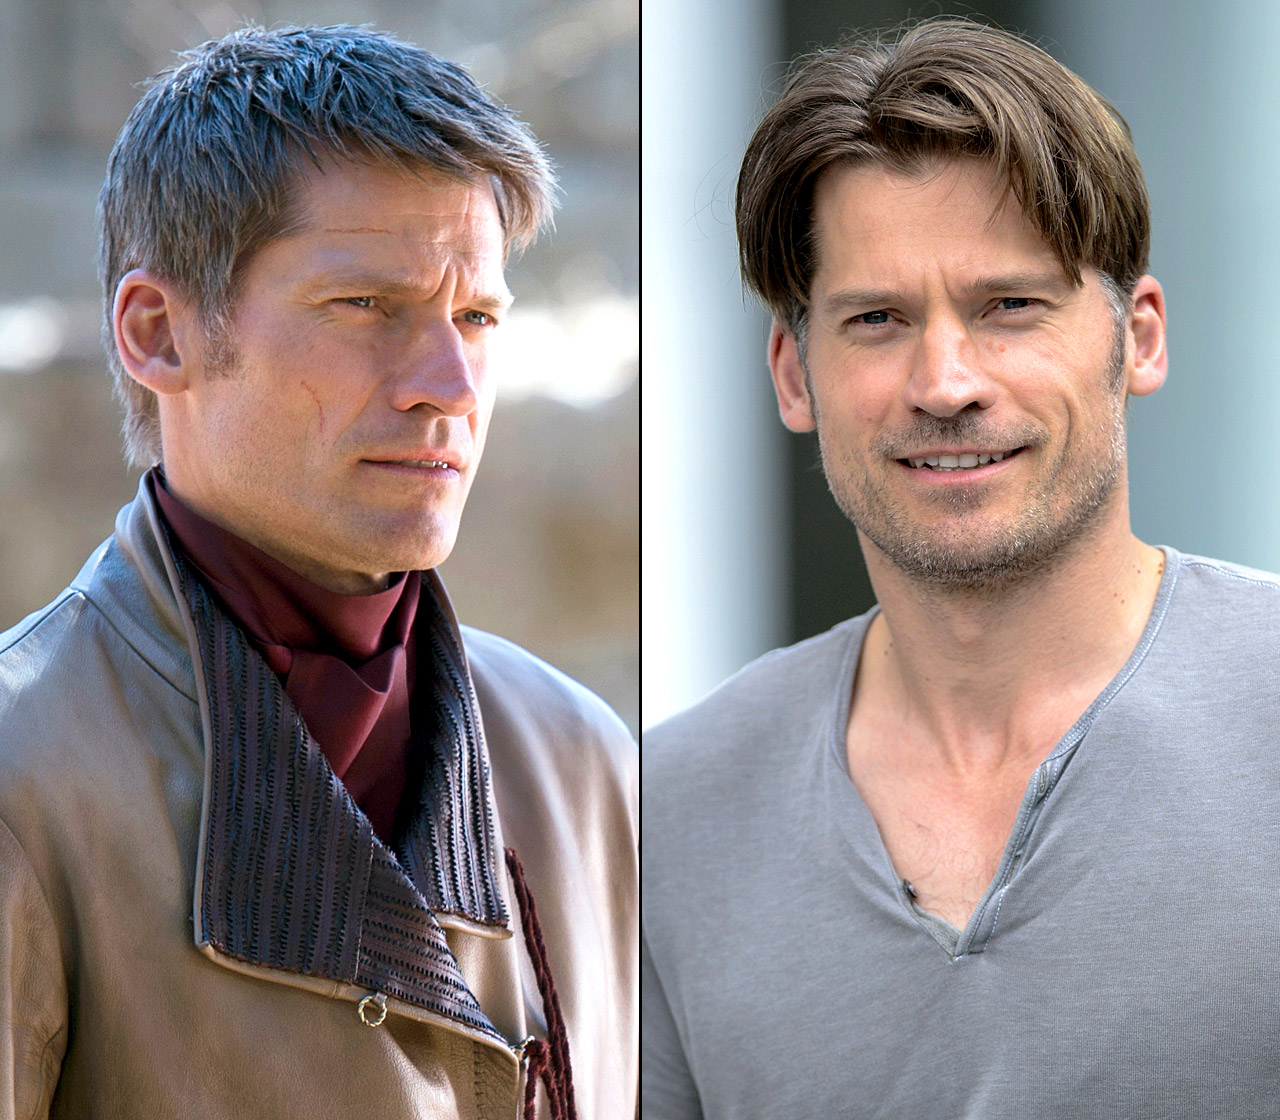 A person doesn't get much more messed in the head than Jaime Lannister, the blood-thirsty, incestuous twin brother of Cersei — which is why it's astonishing that the actor who portrays him so convincingly is actually a well-rounded, balanced, normal dude. The actor is a father of two who enjoys downward dogging with his yoga enthusiast wife and cyclo-cross biking during his downtime.